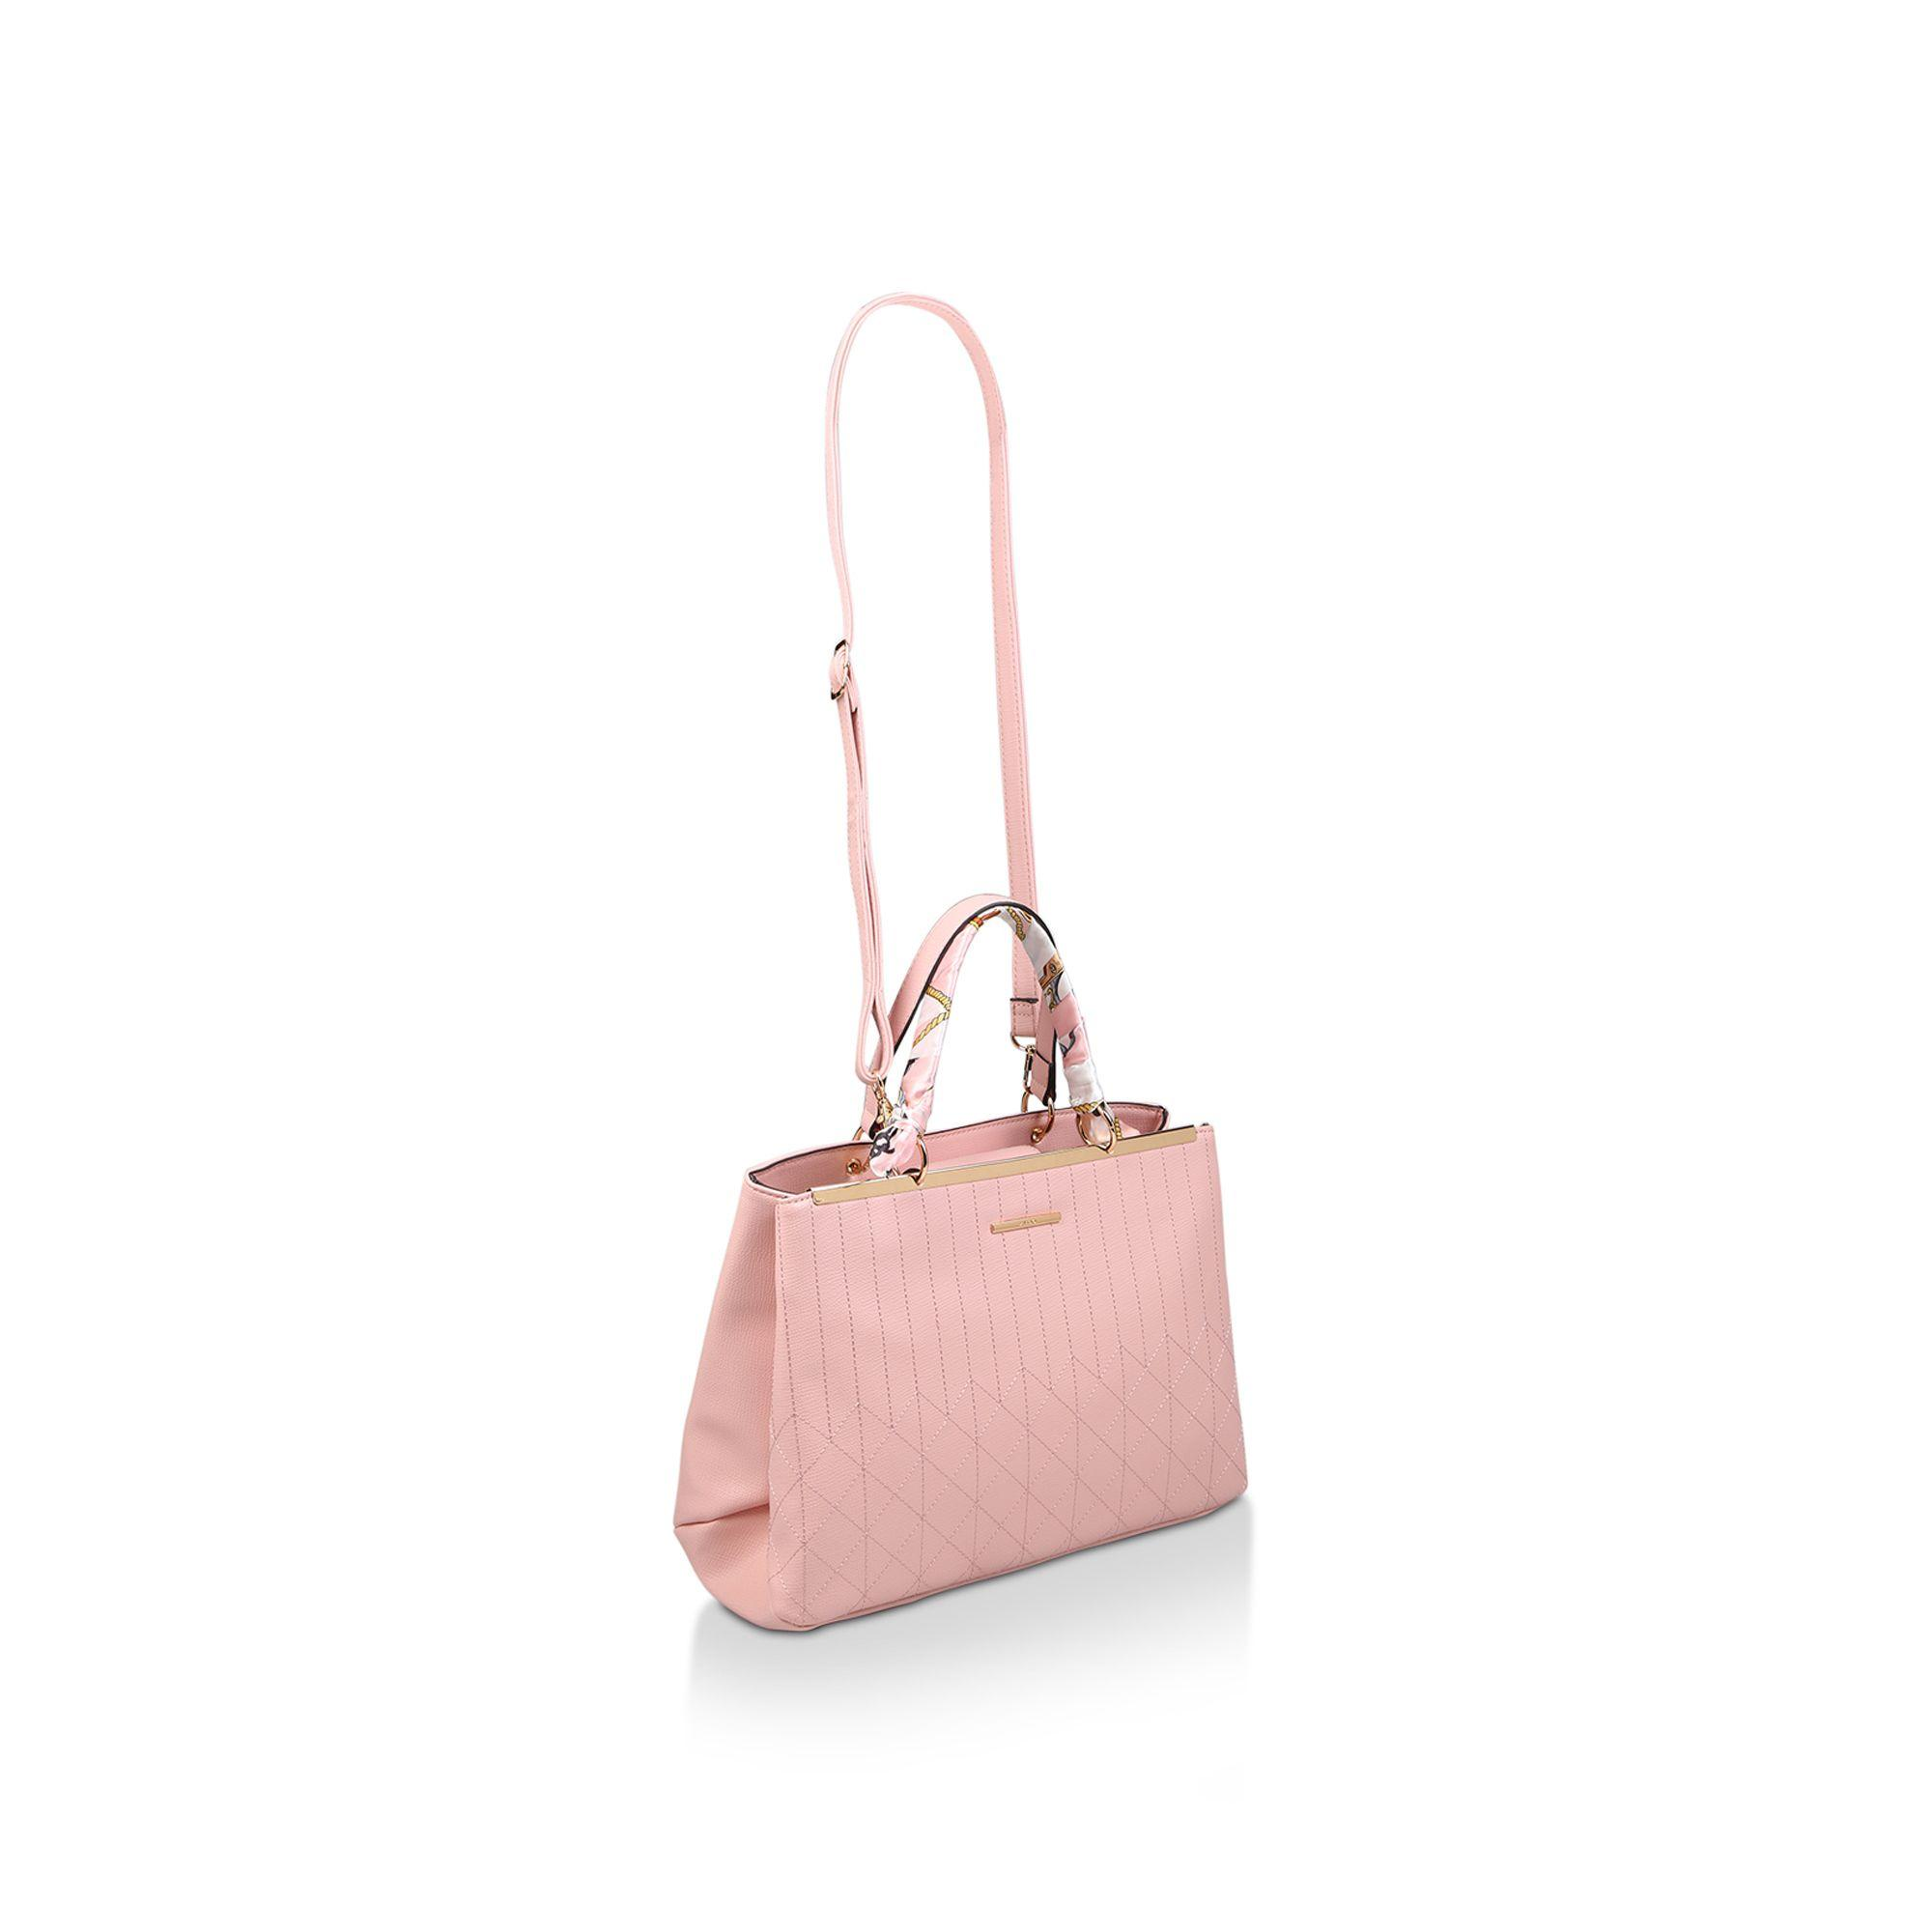 42f518b4bff ALDO Pink  lauser  Tote Bag in Pink - Lyst